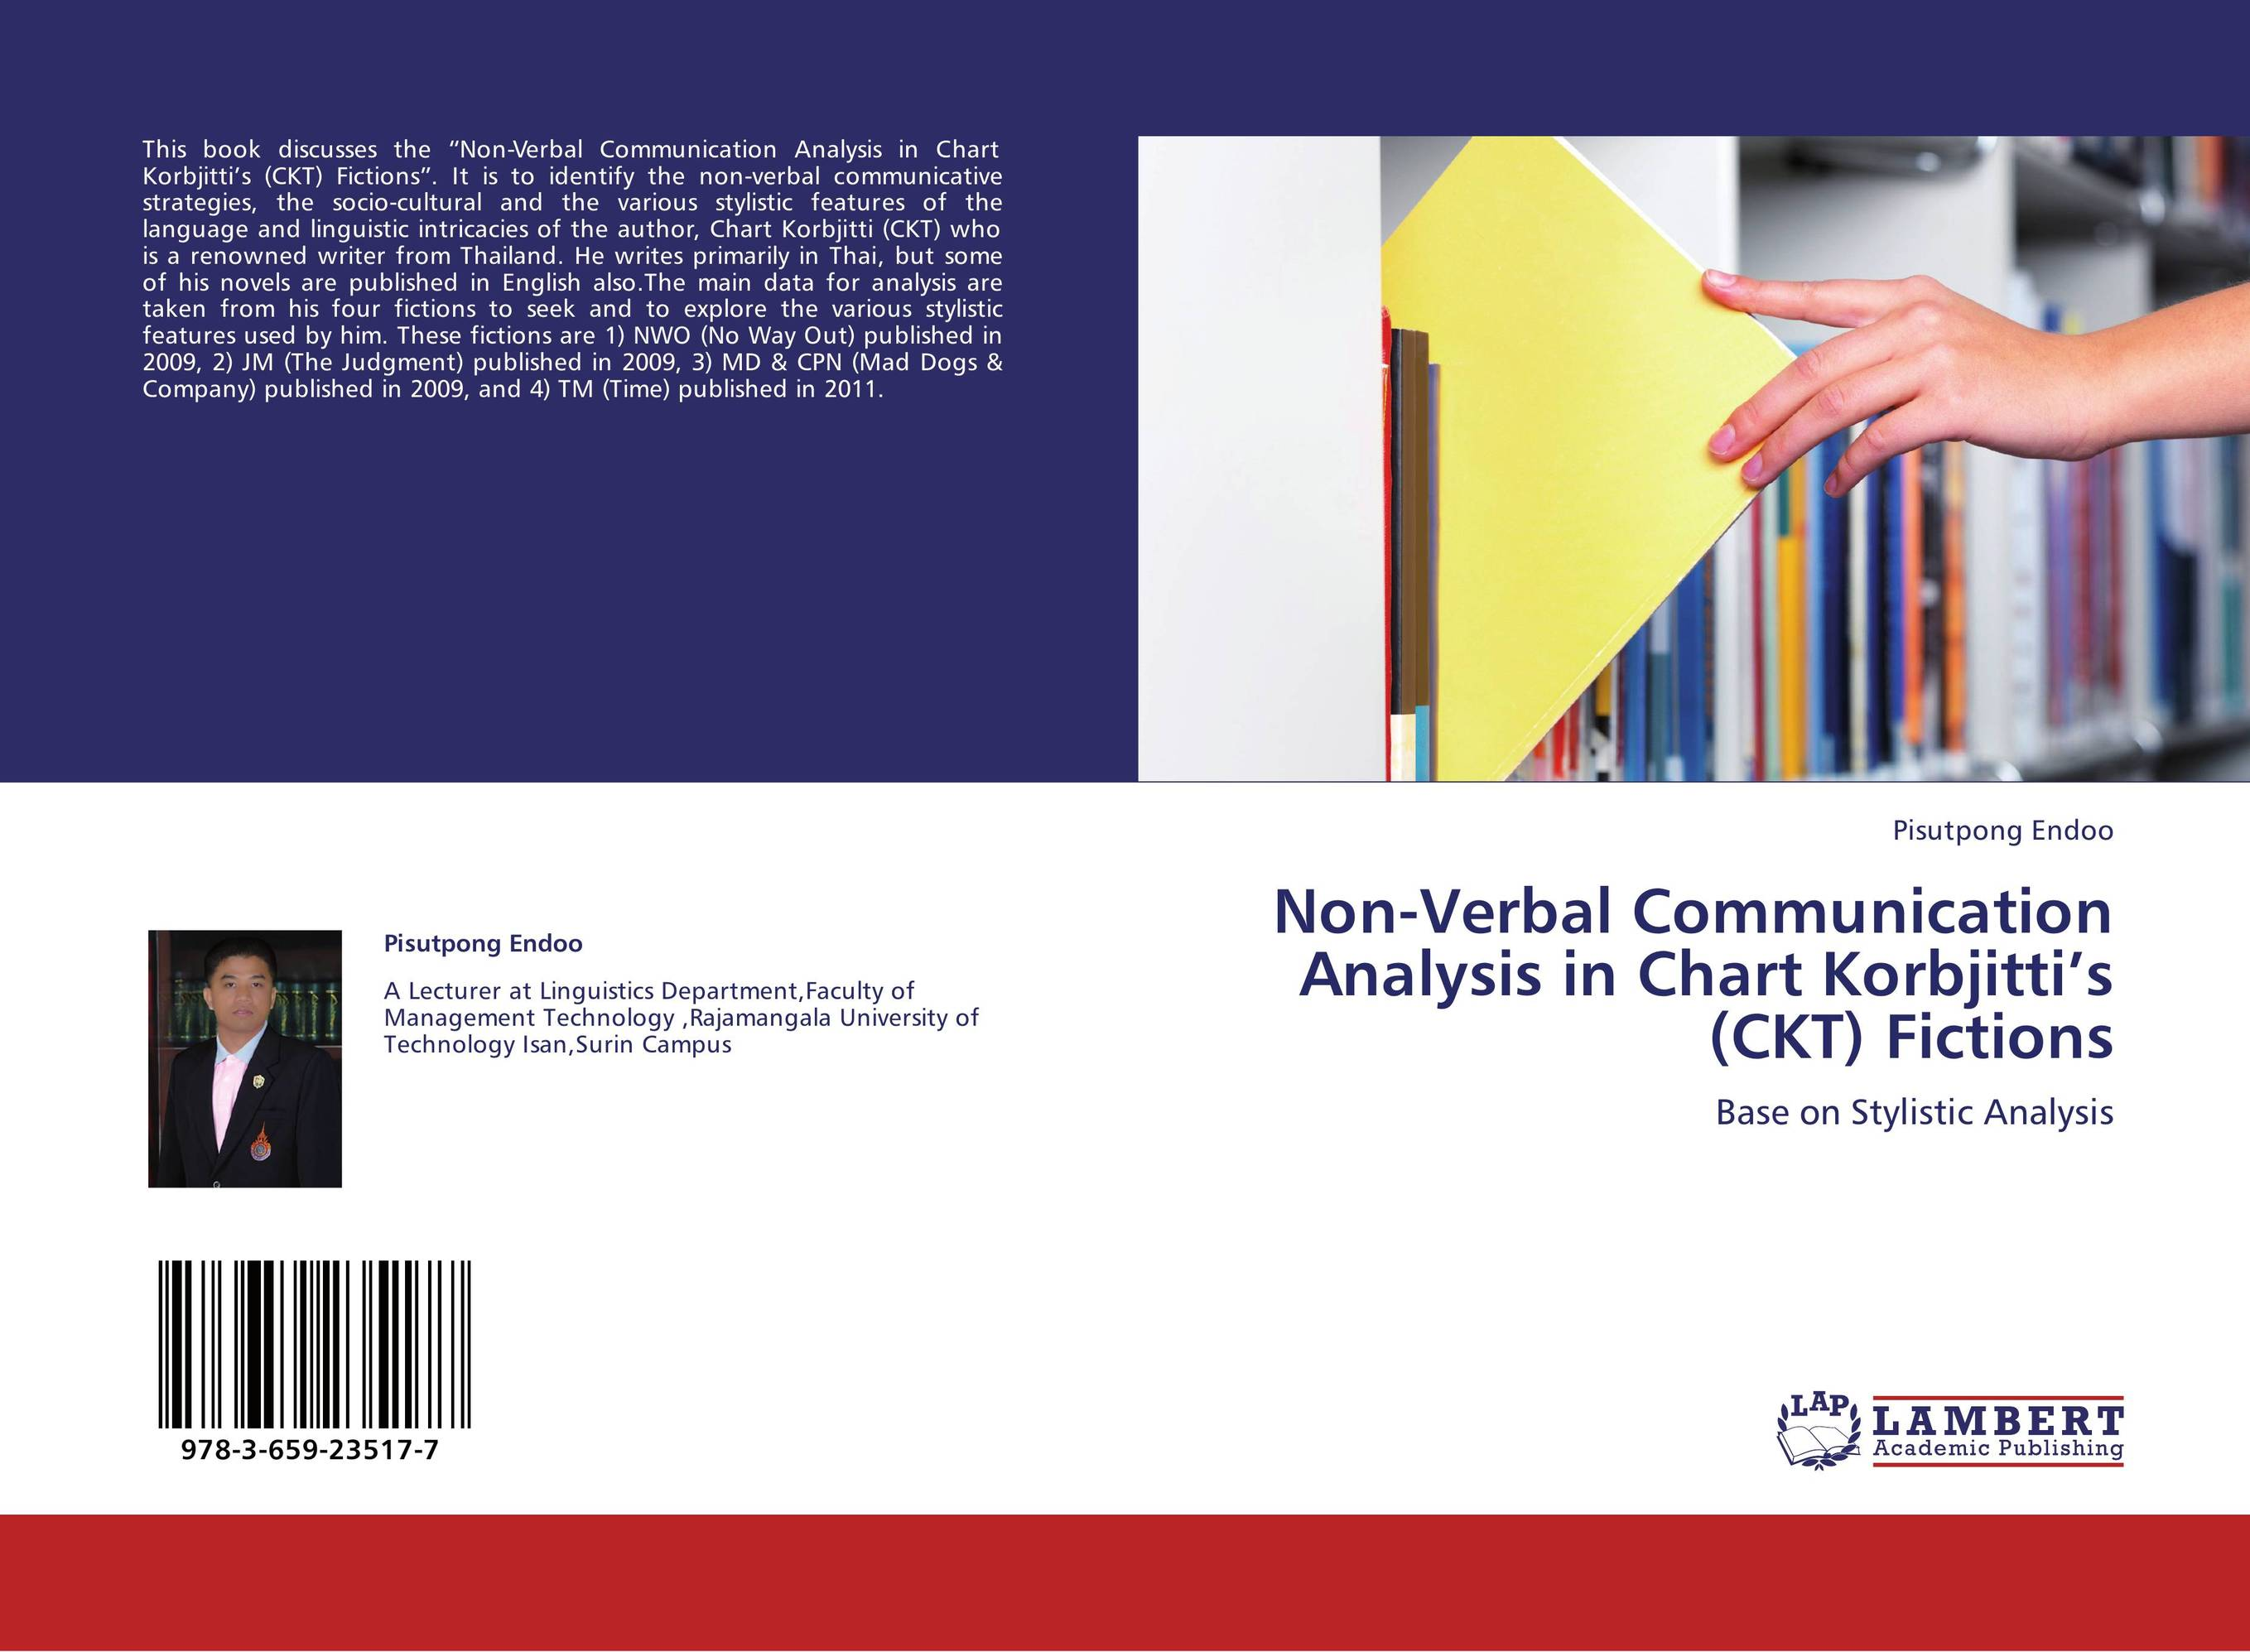 analysis of non verbal communications This volume brings together the advanced research results obtained by the european cost action 2102 cross modal analysis of verbal and nonverbal communication, primarily discussed at the pink sspnet-cost2102 international conference on analysis of verbal and nonverbal communication and enactment:.